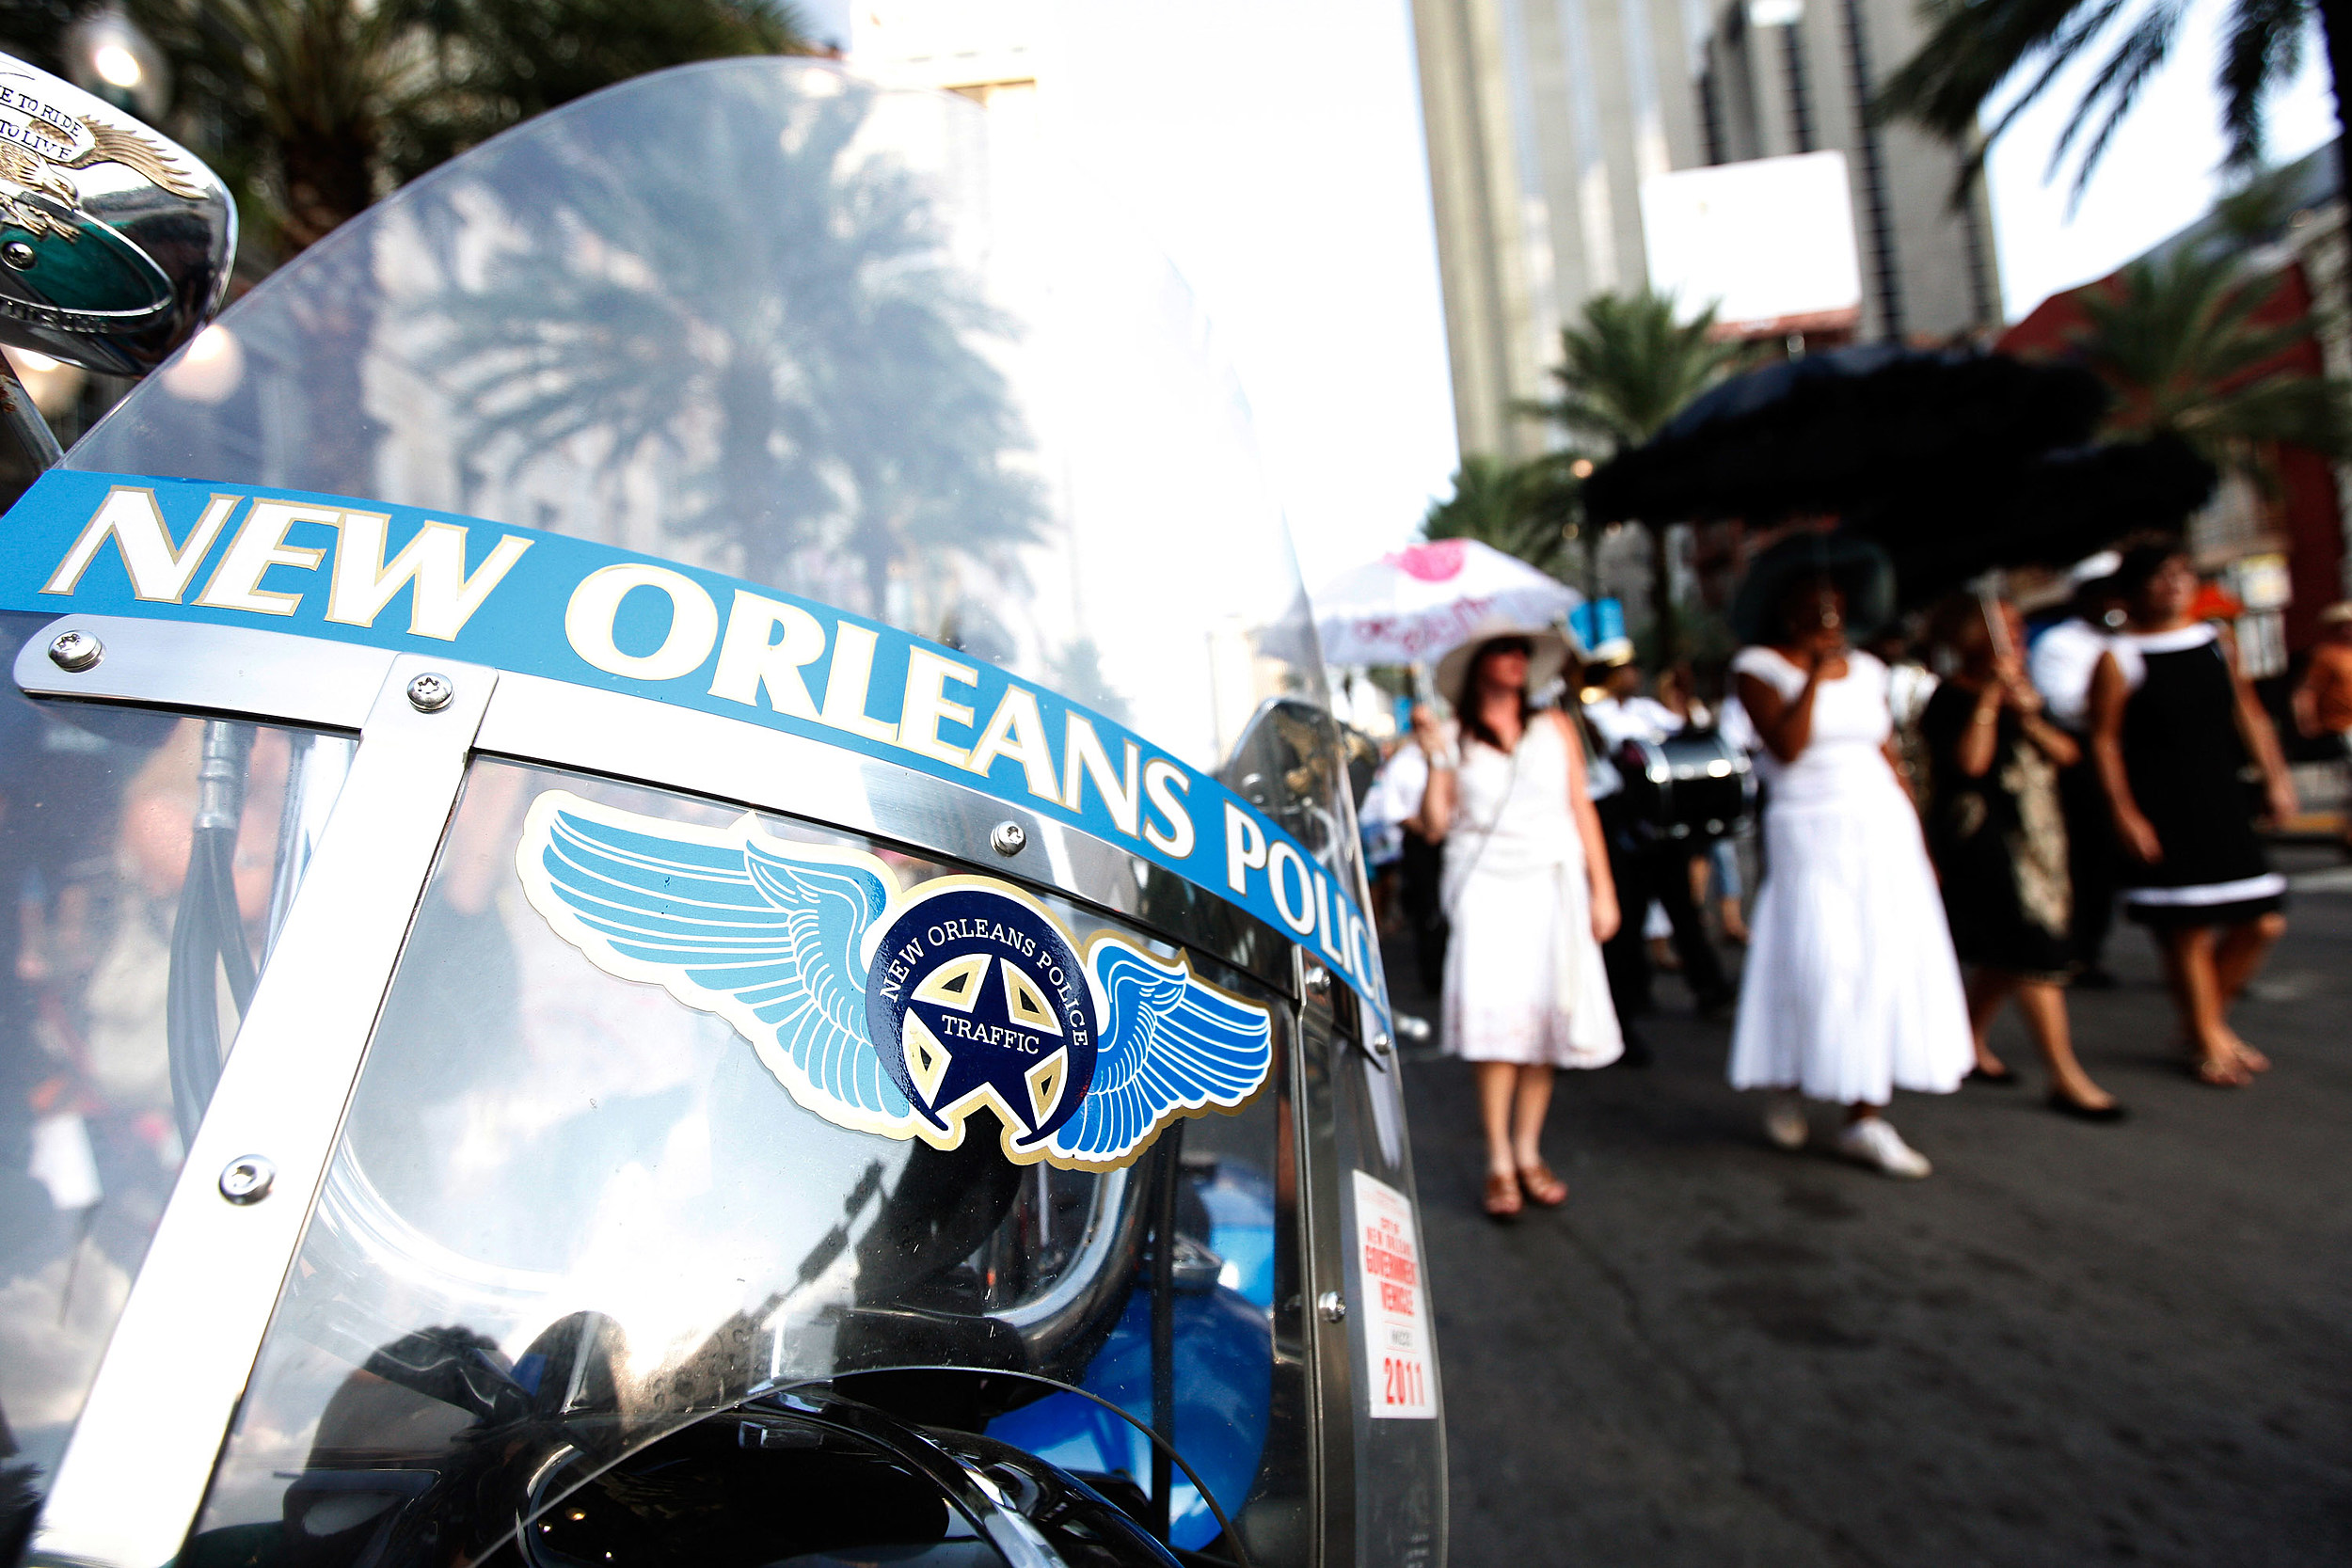 New orleans police kpel 96 5 for Police orleans